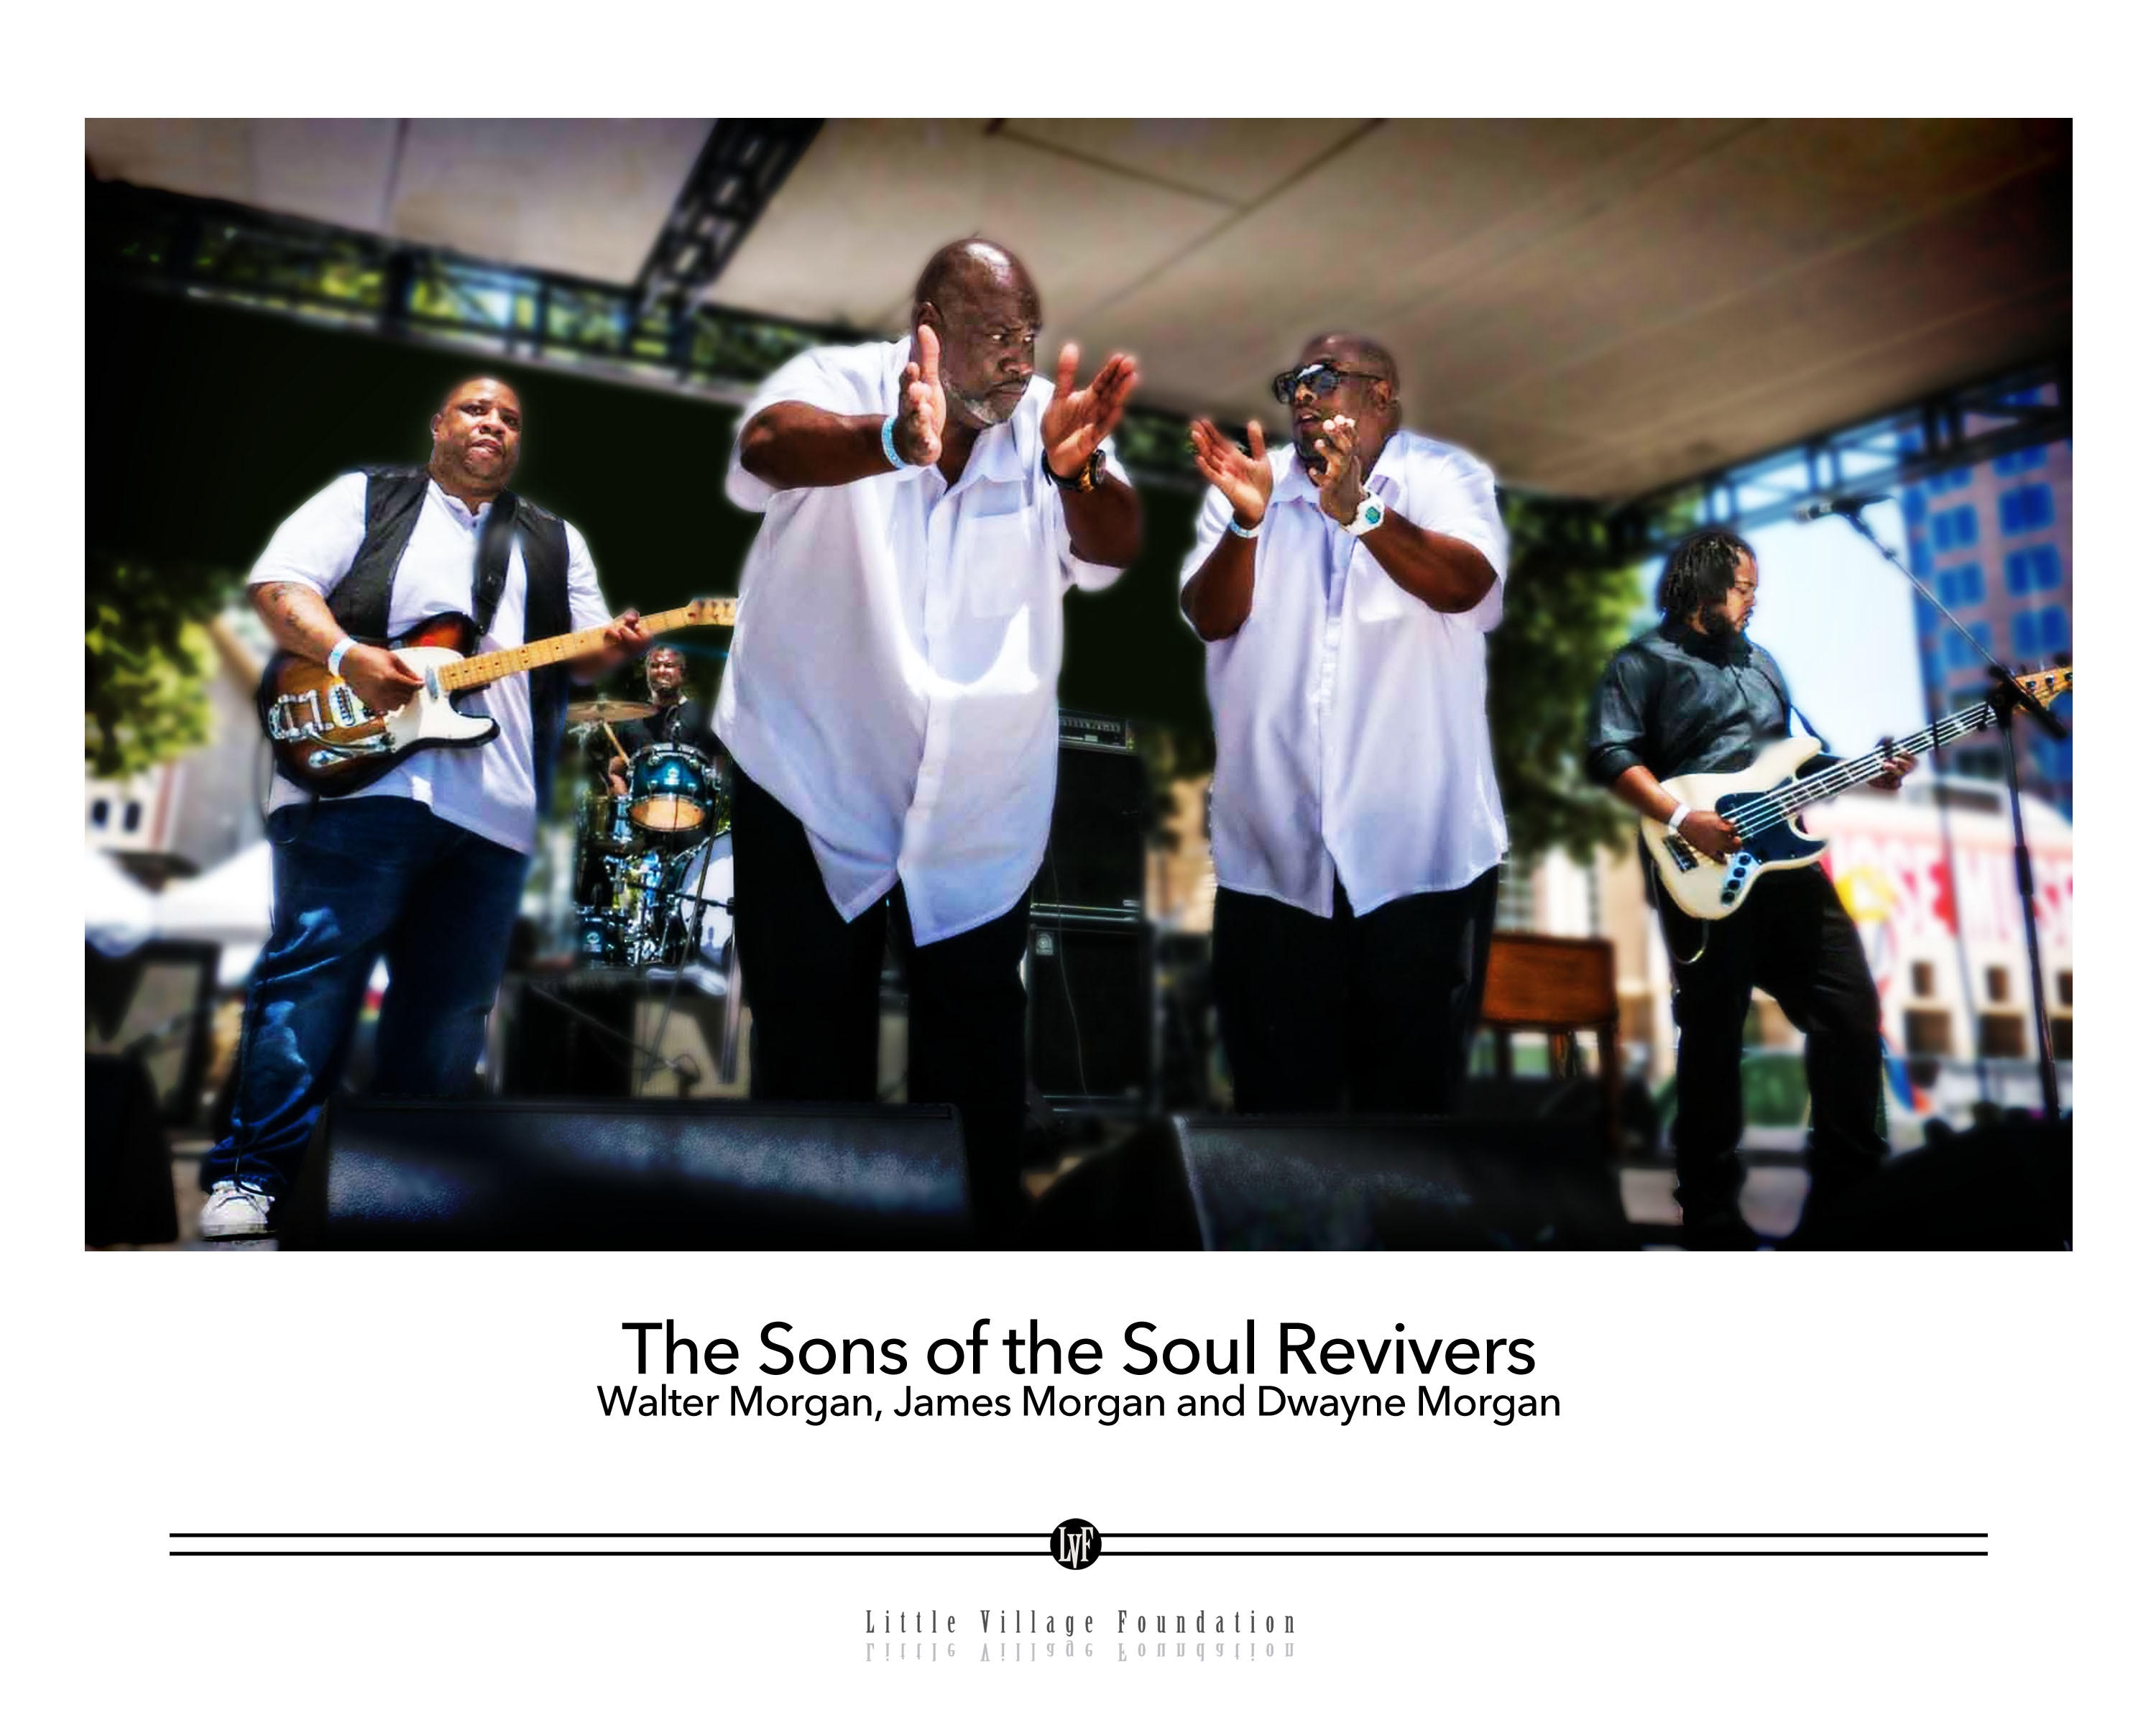 Celebrate with the Sons of the Soul Revivers